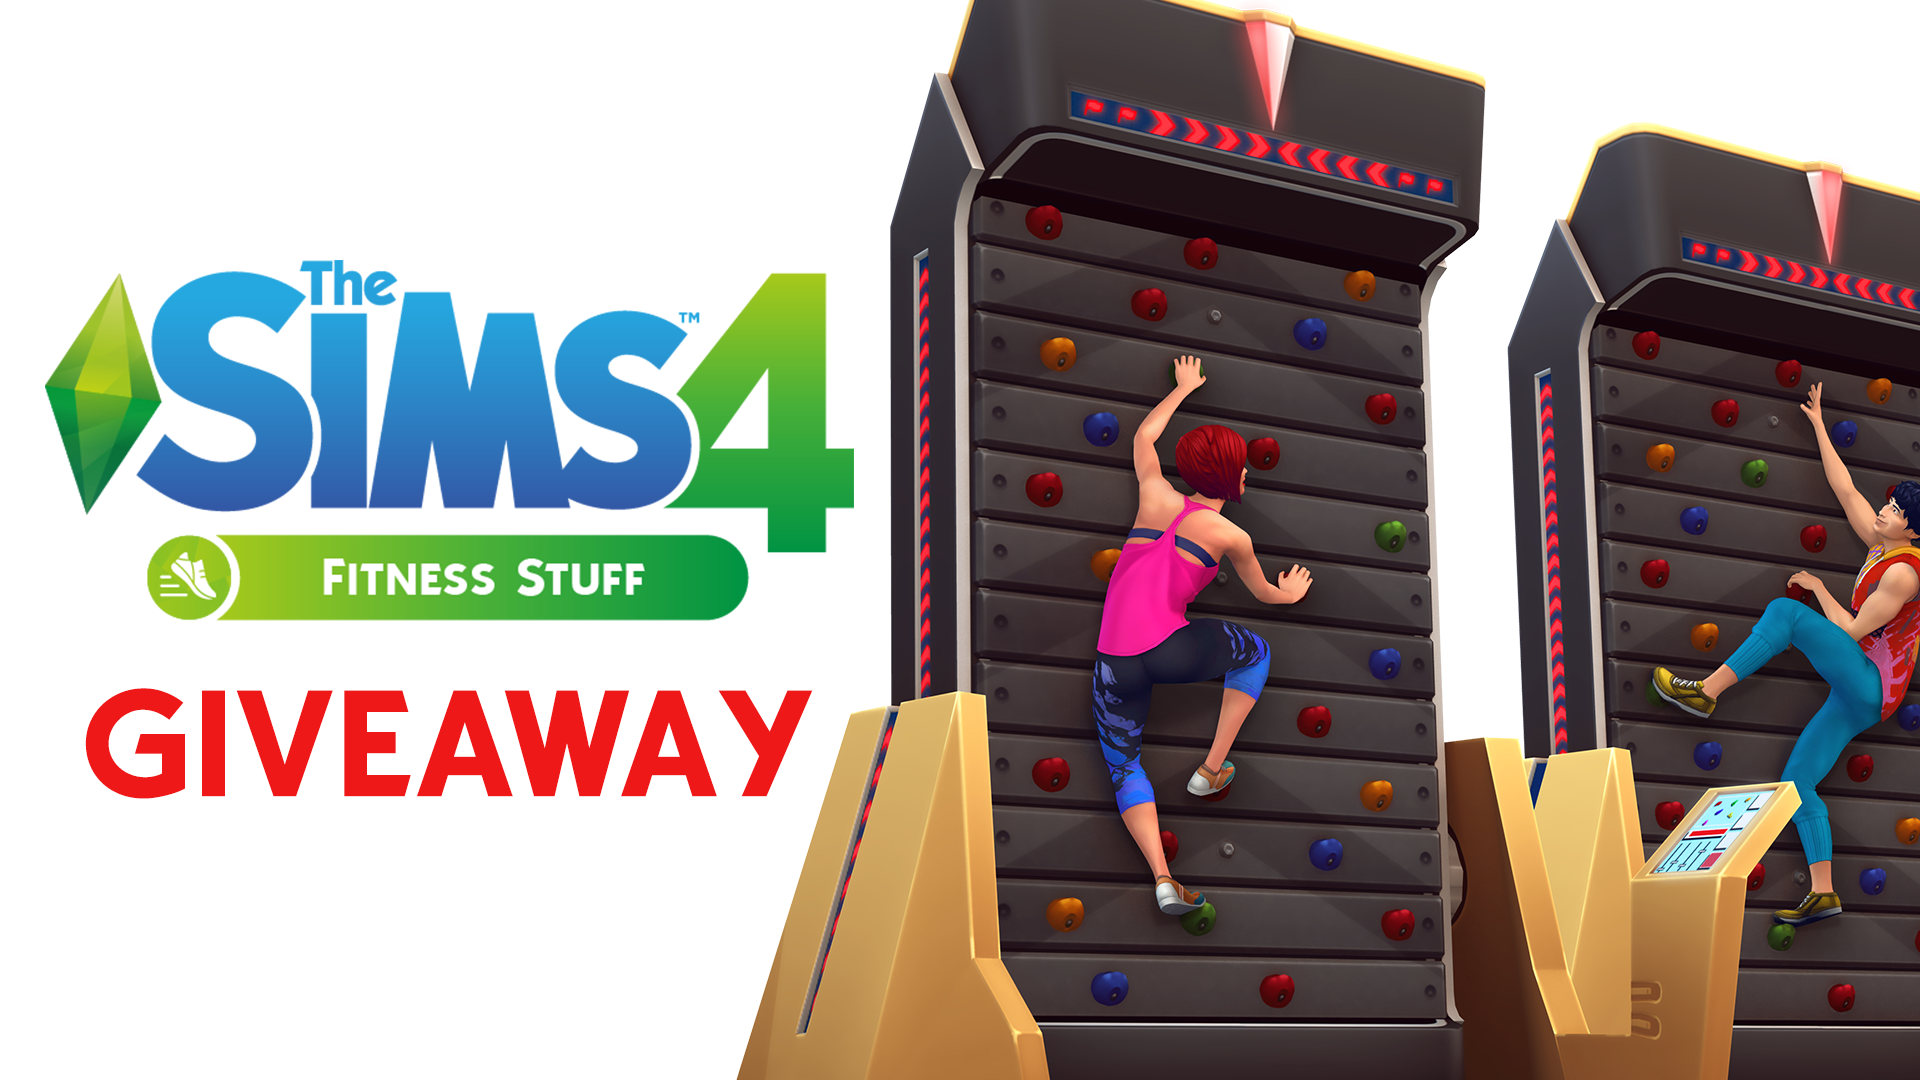 sims 4 giveaway simsvip giveaway win the sims 4 fitness stuff simsvip 6159